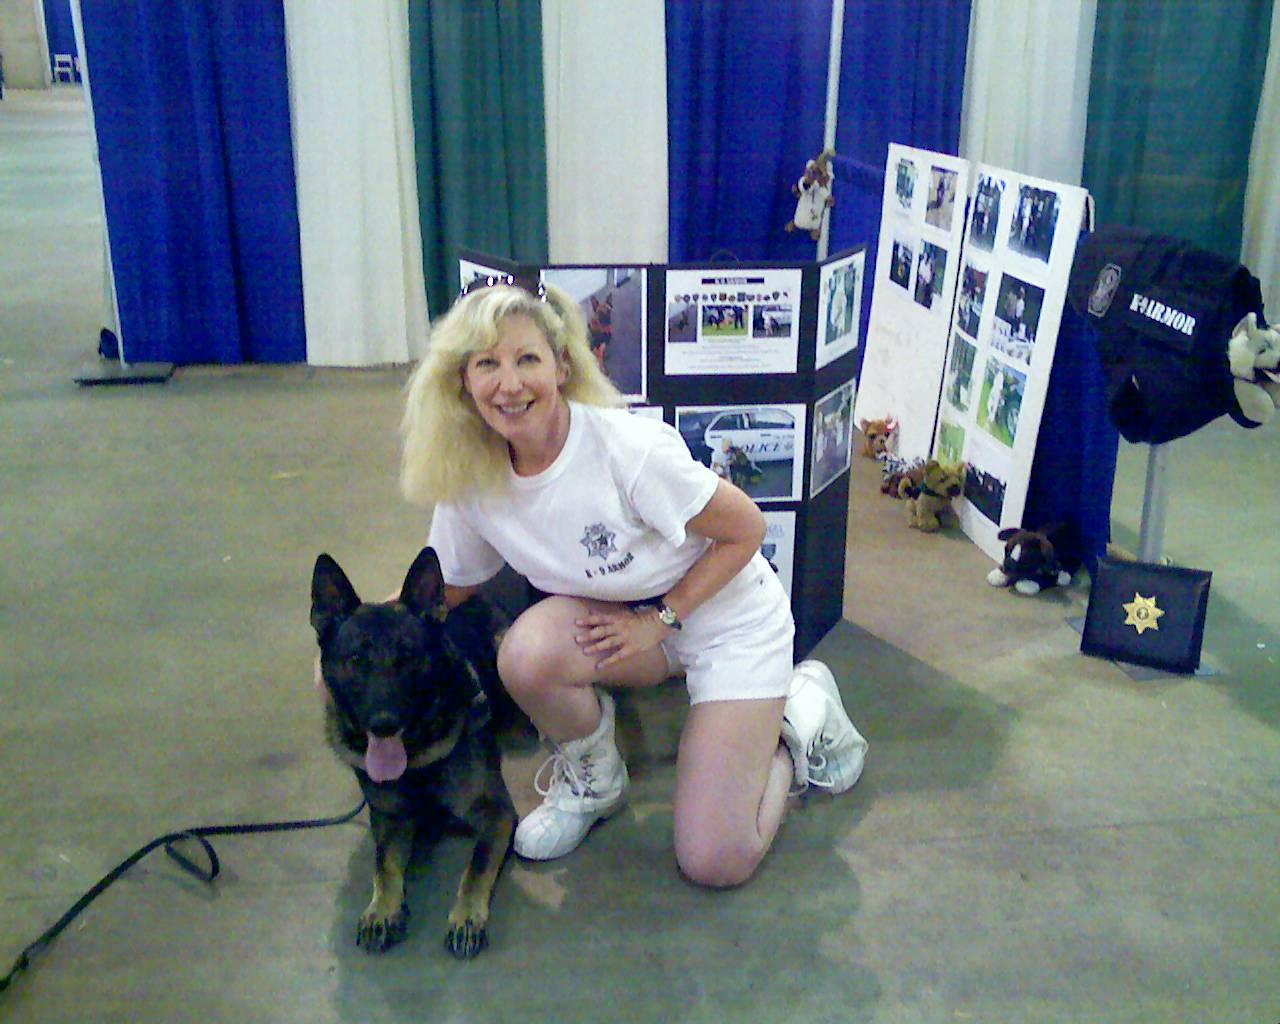 K9 Armor Accepts Donations To Give Free Bulletproof Vests